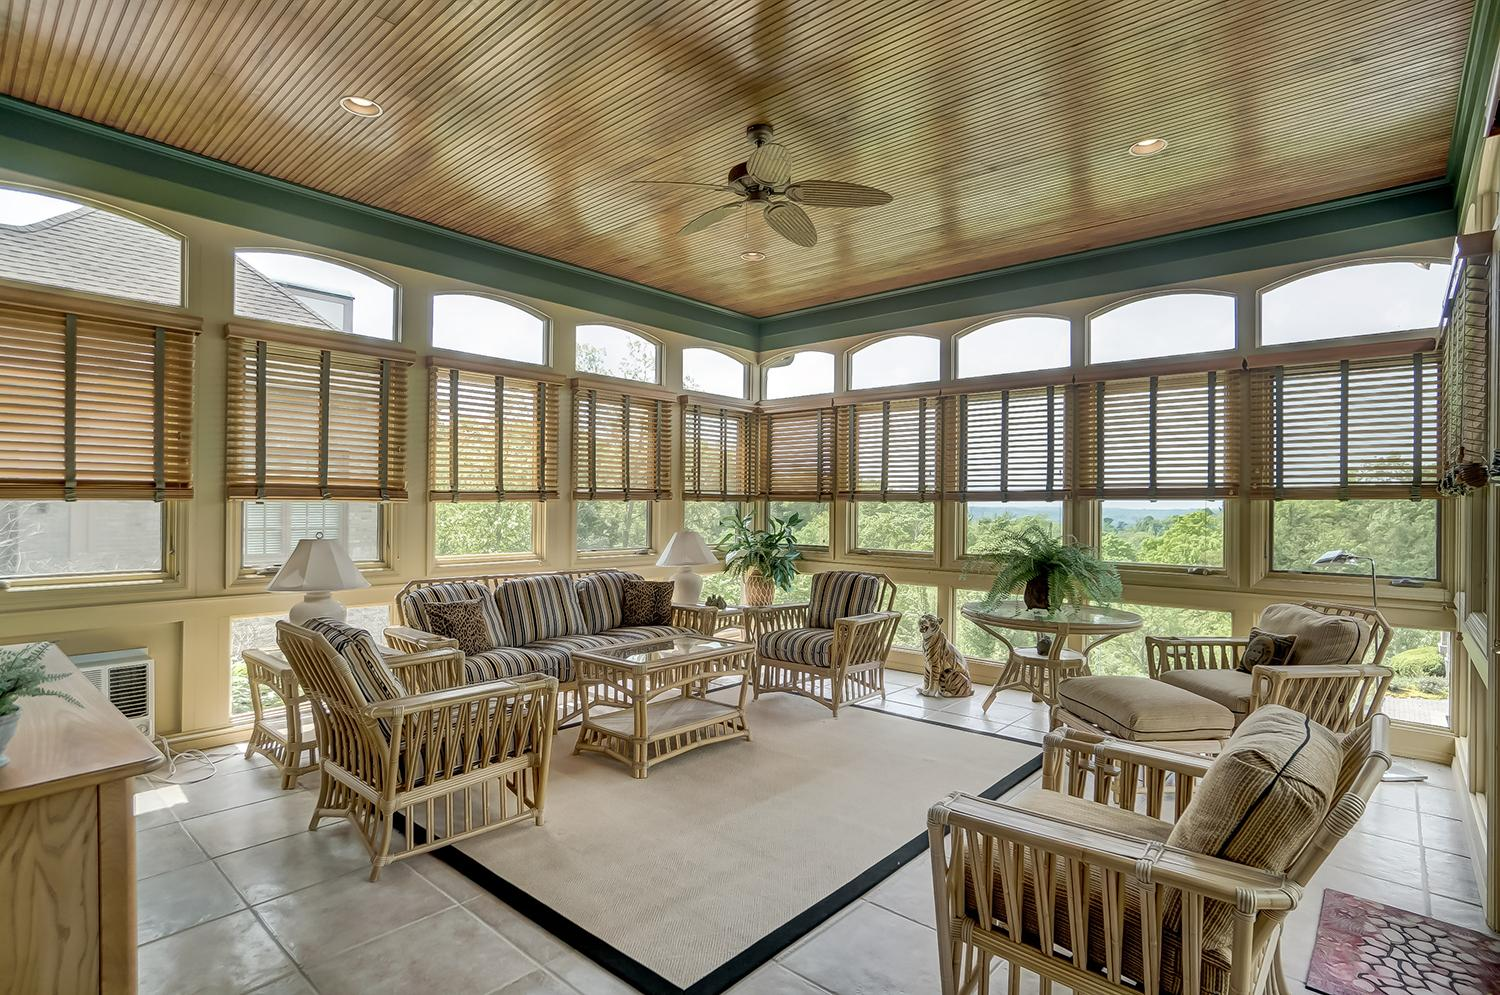 Designed for year-round living, the four-season room is filled with natural light and makes a great gathering spot for the whole family. / Image: Wow Video Tours // Published: 6.8.18